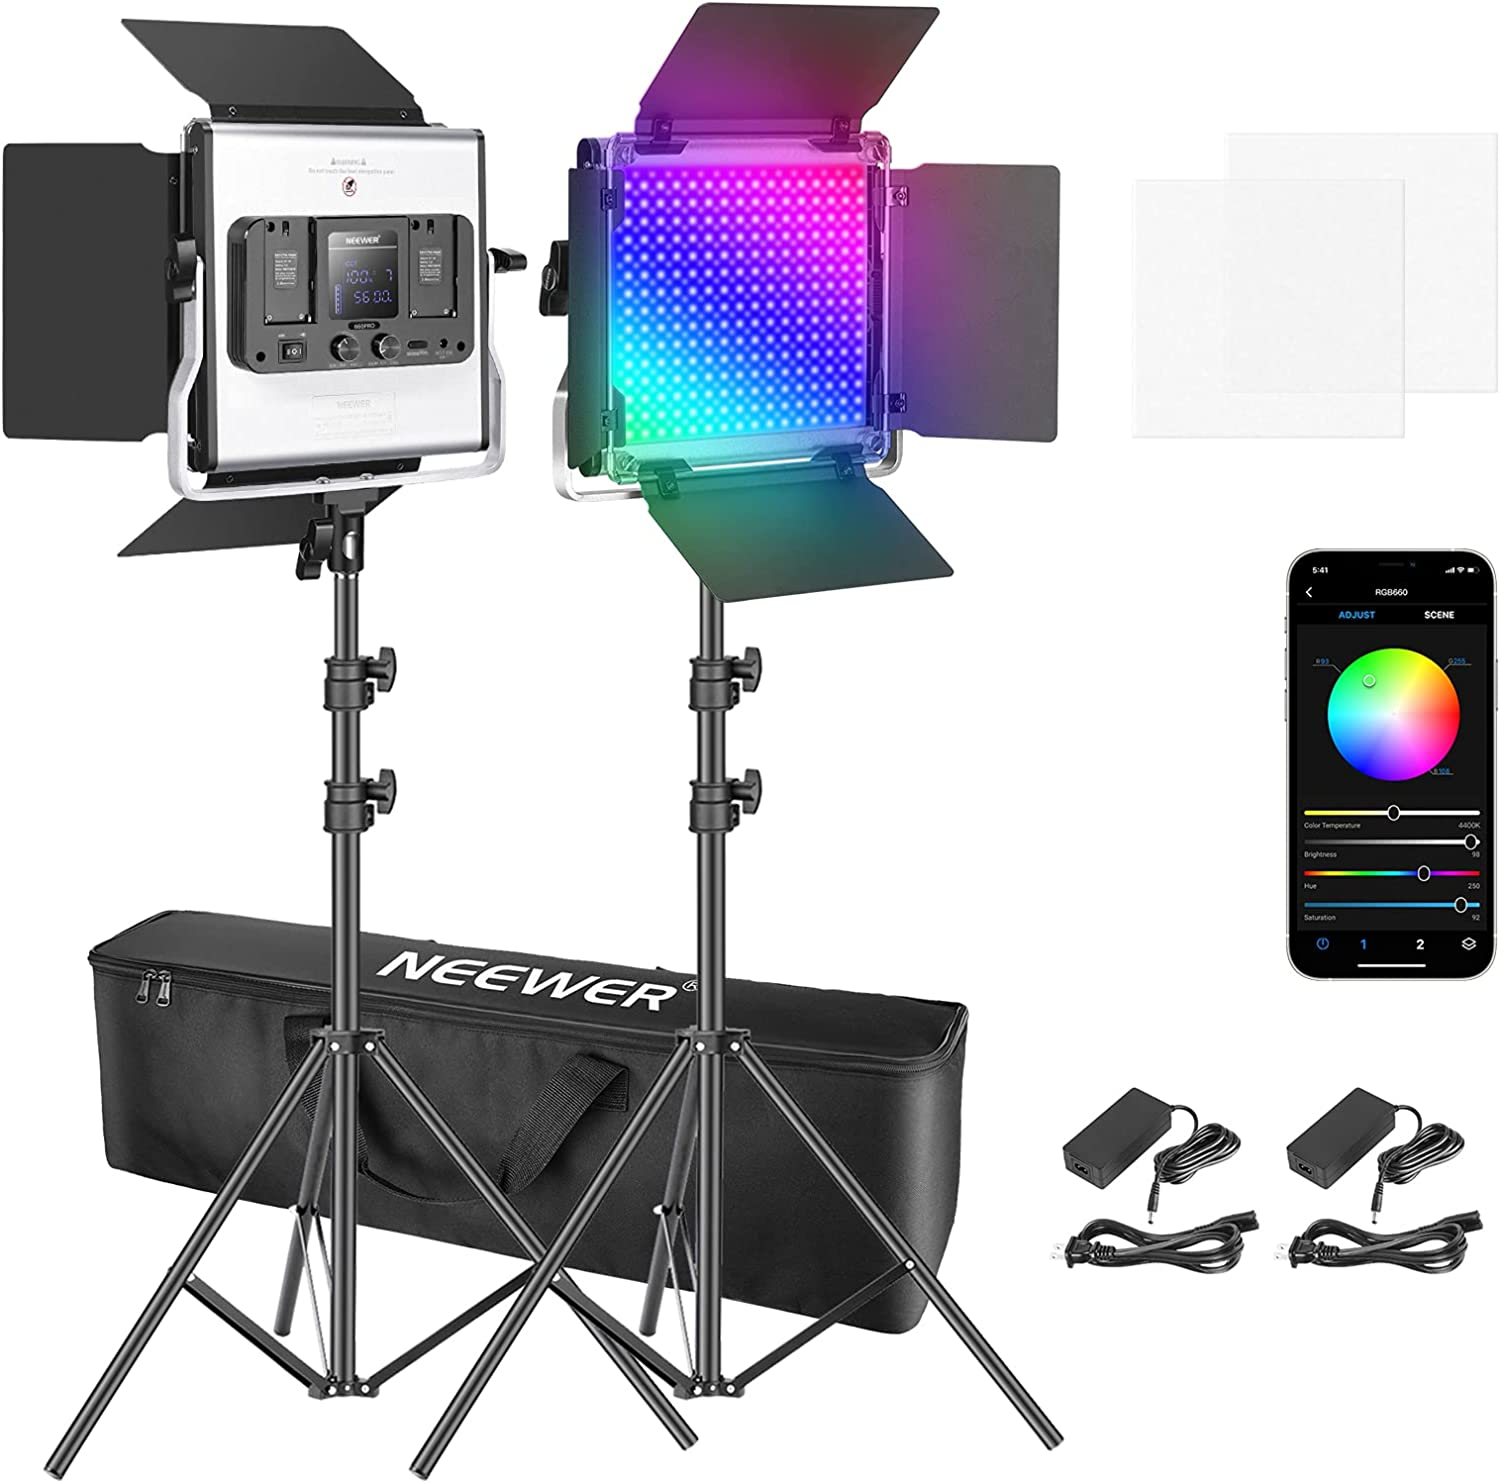 Neewer 660 RGB LED Video Light Vid Control Photography Excellent with App mart